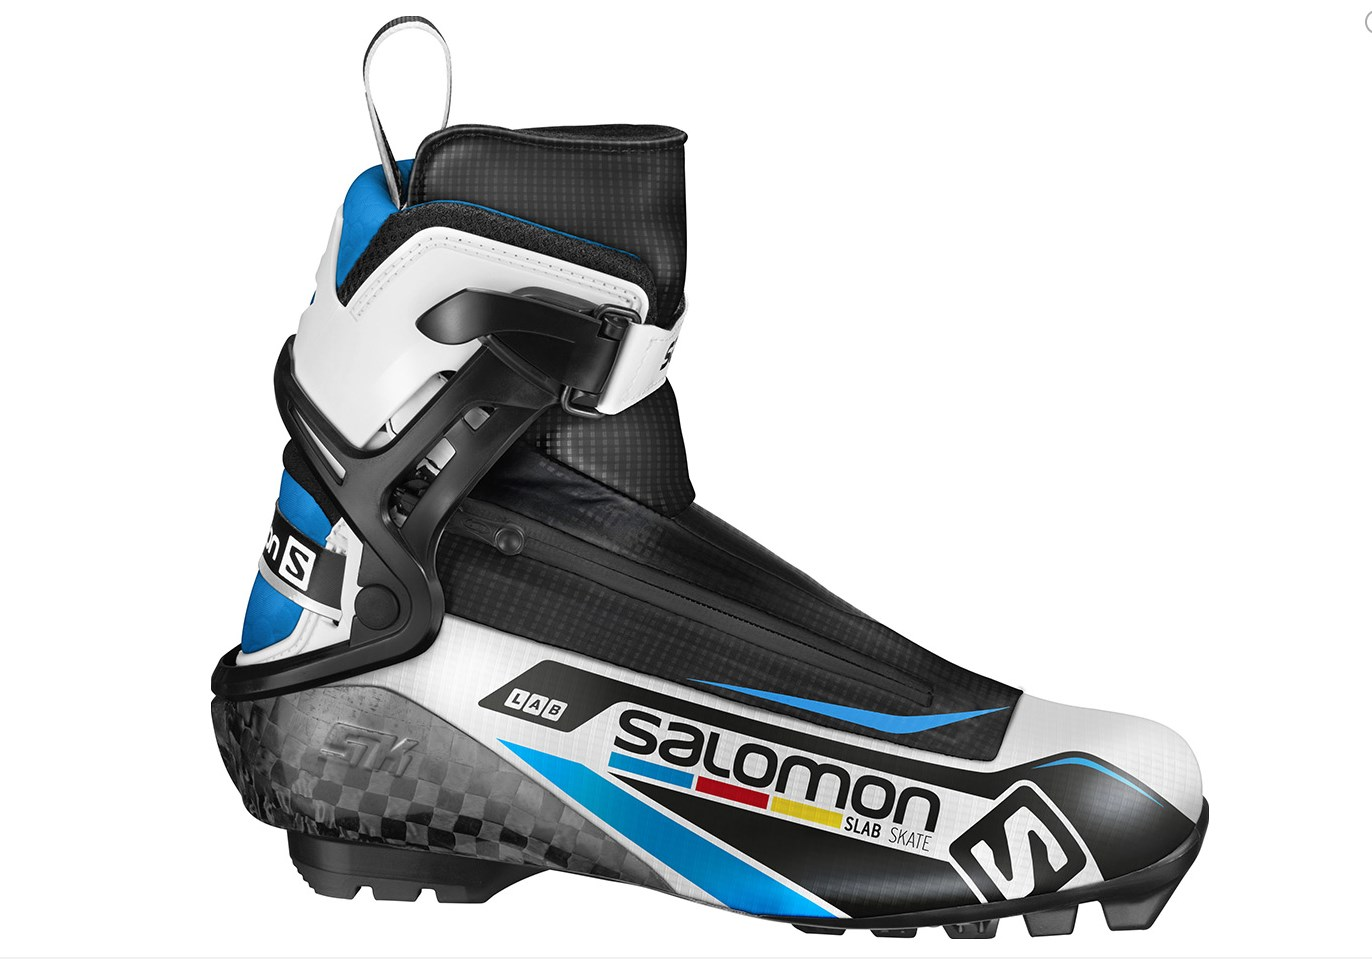 Ботинки лыжные SALOMON S-Lab Skate (16/17)